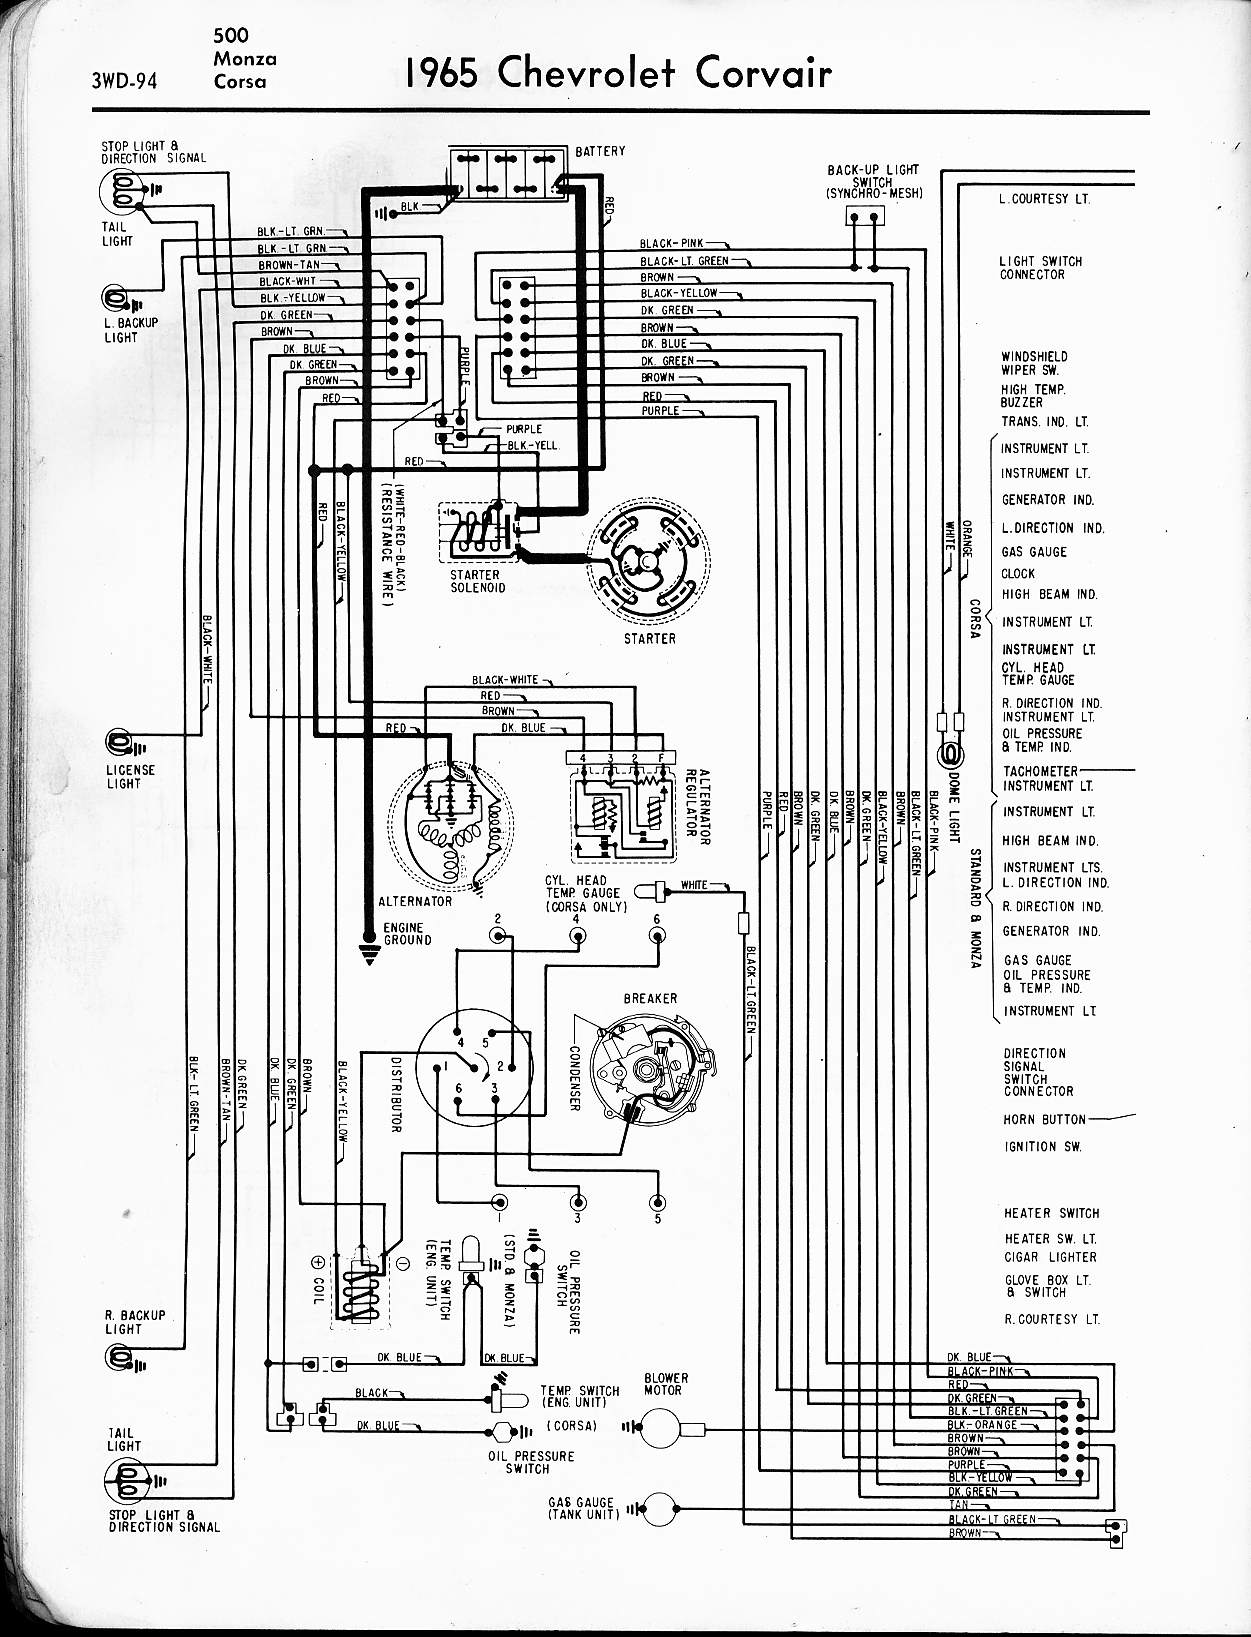 MWireChev64_3WD 094 57 65 chevy wiring diagrams 1965 corvair wiring diagram at nearapp.co